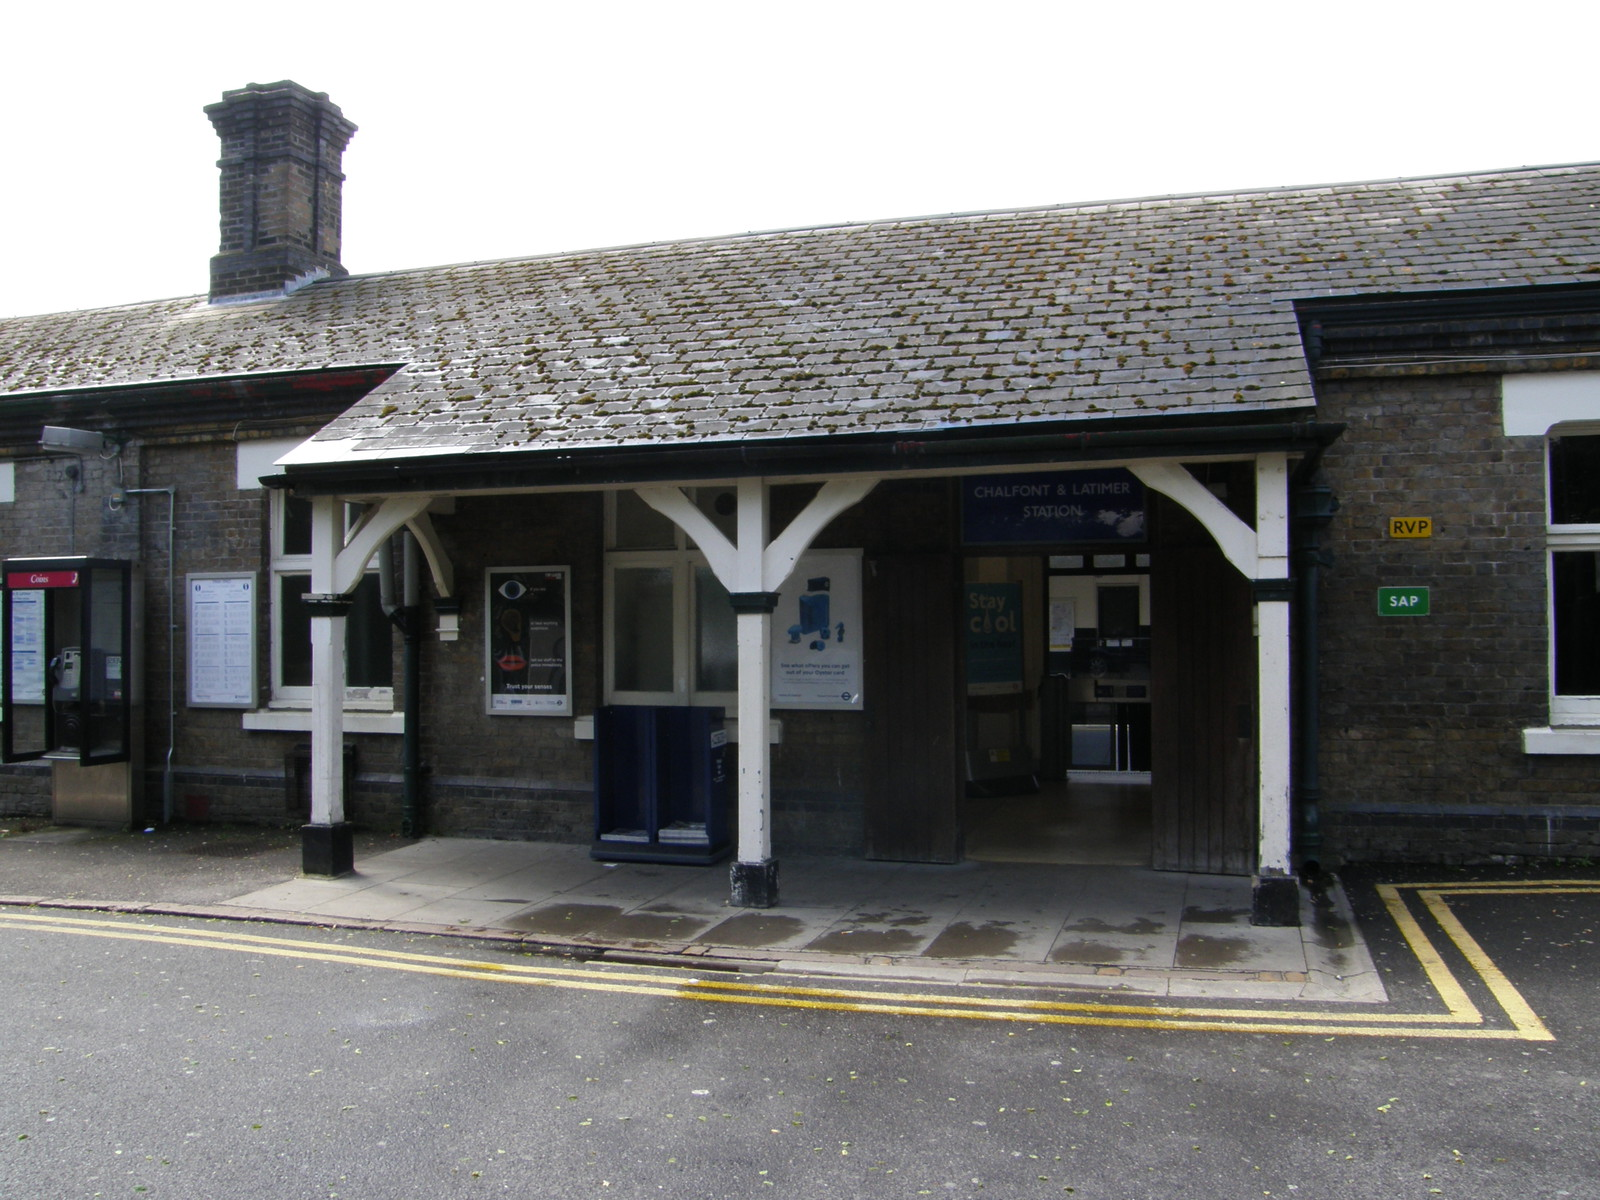 Chalfont & Latimer station